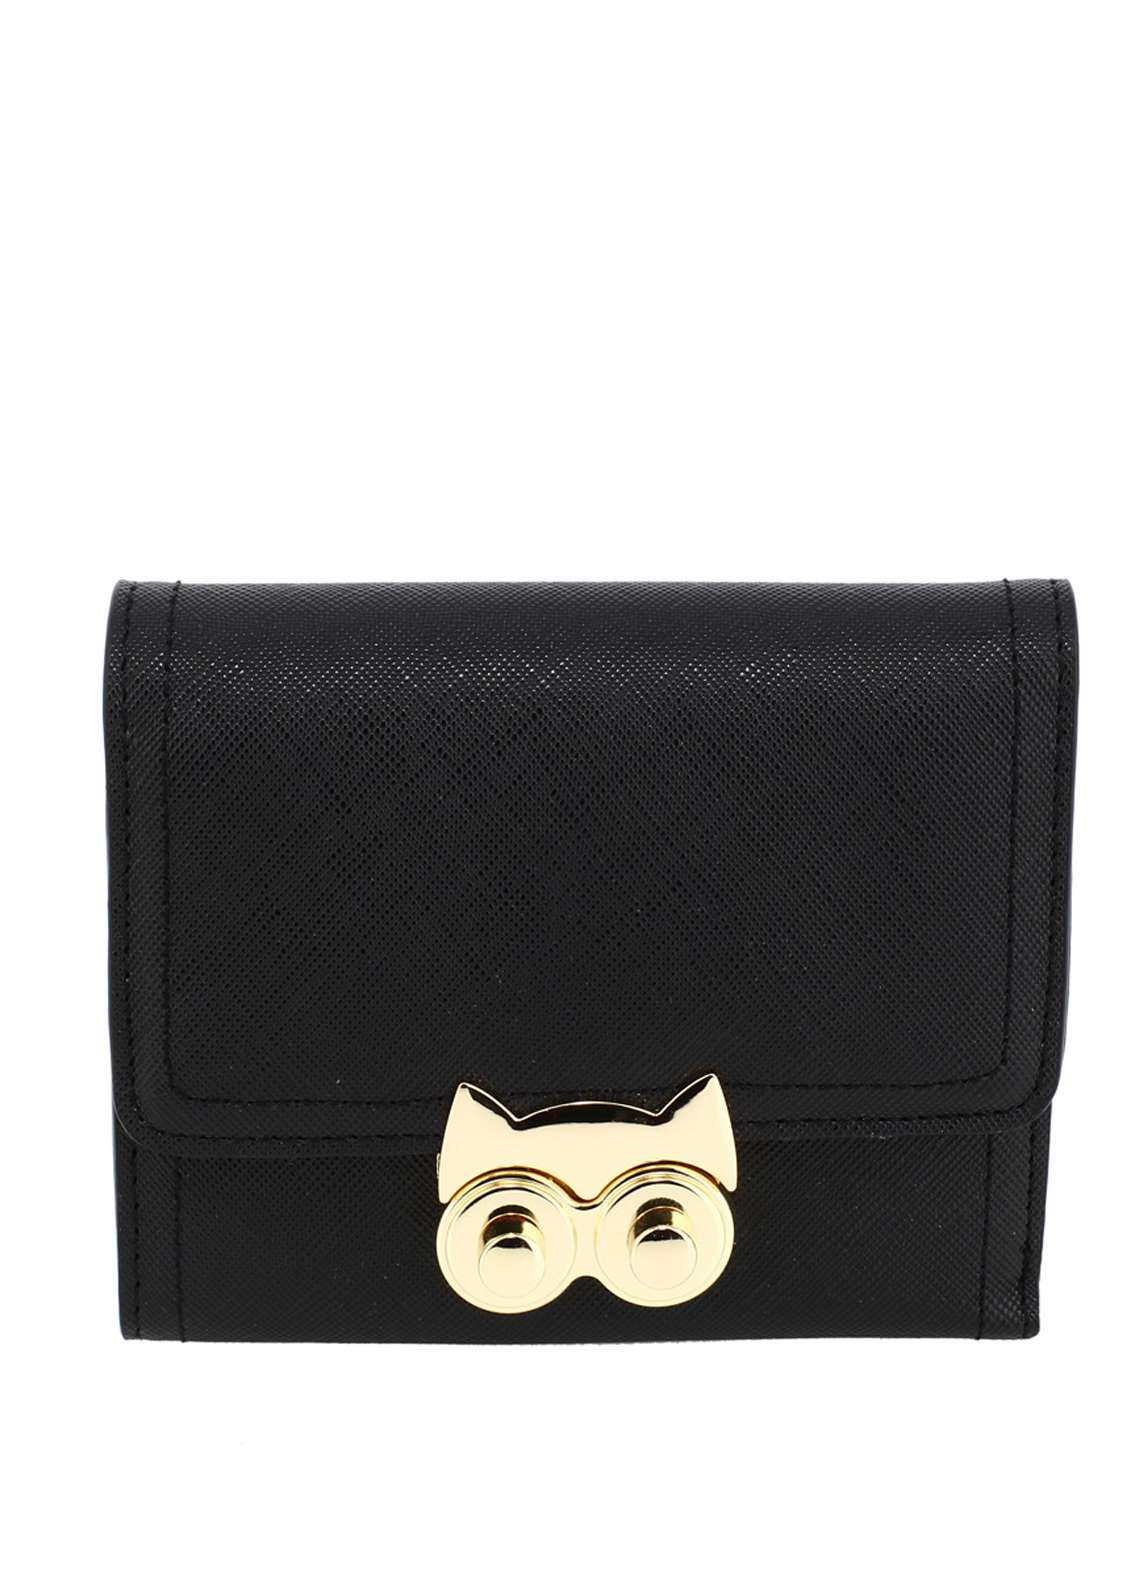 Anna Grace London Faux Leather Purse Wallets  for Women  Black with Gold Metal Work